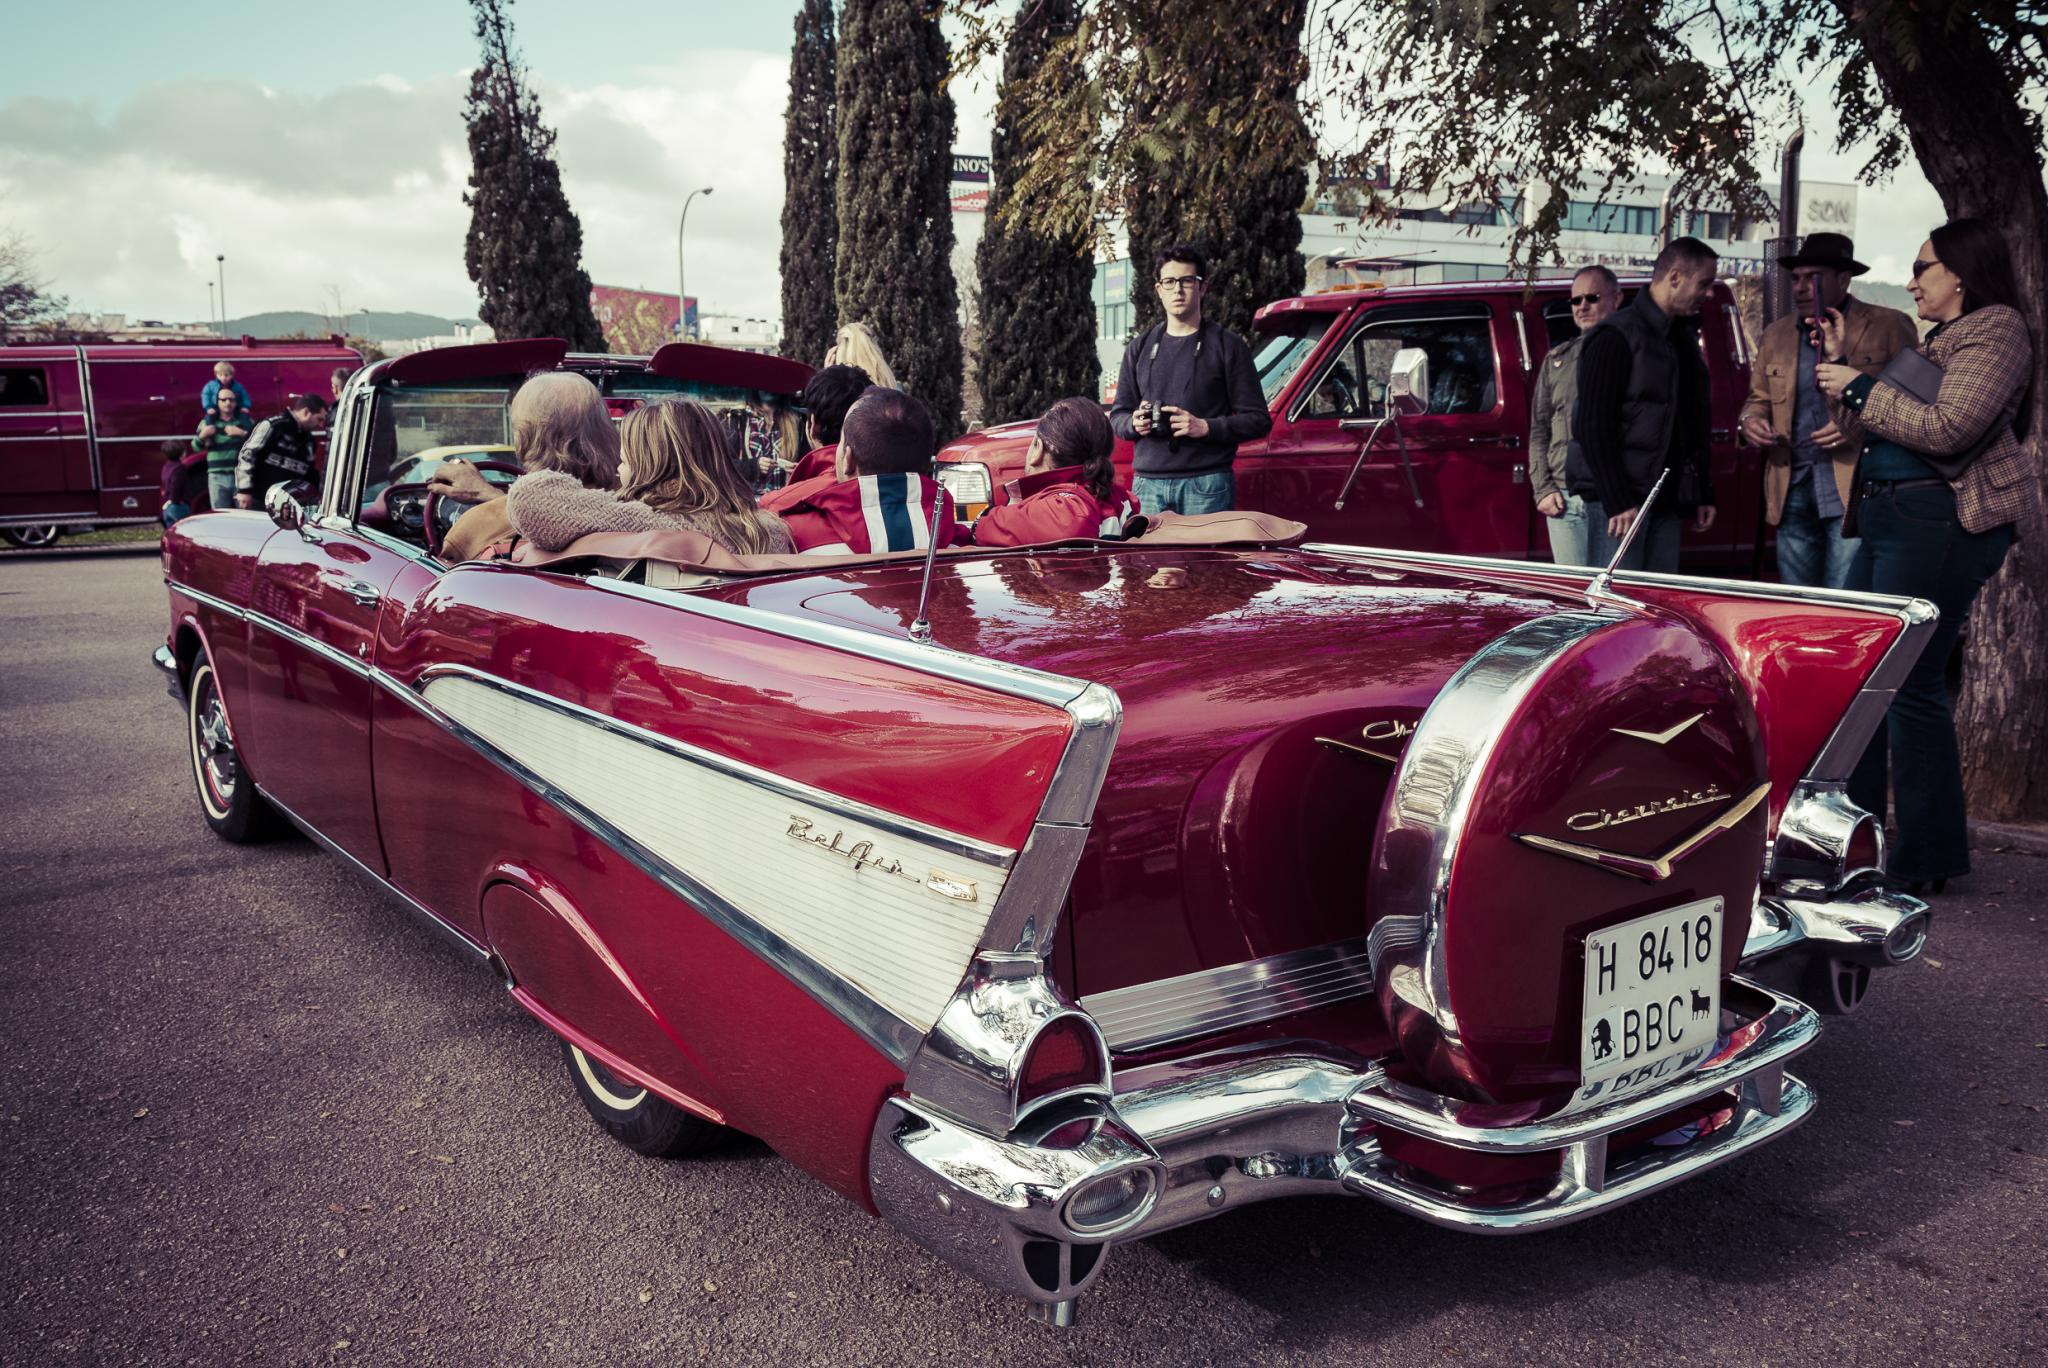 You can fit a few people in your '57 Chevy Belair.